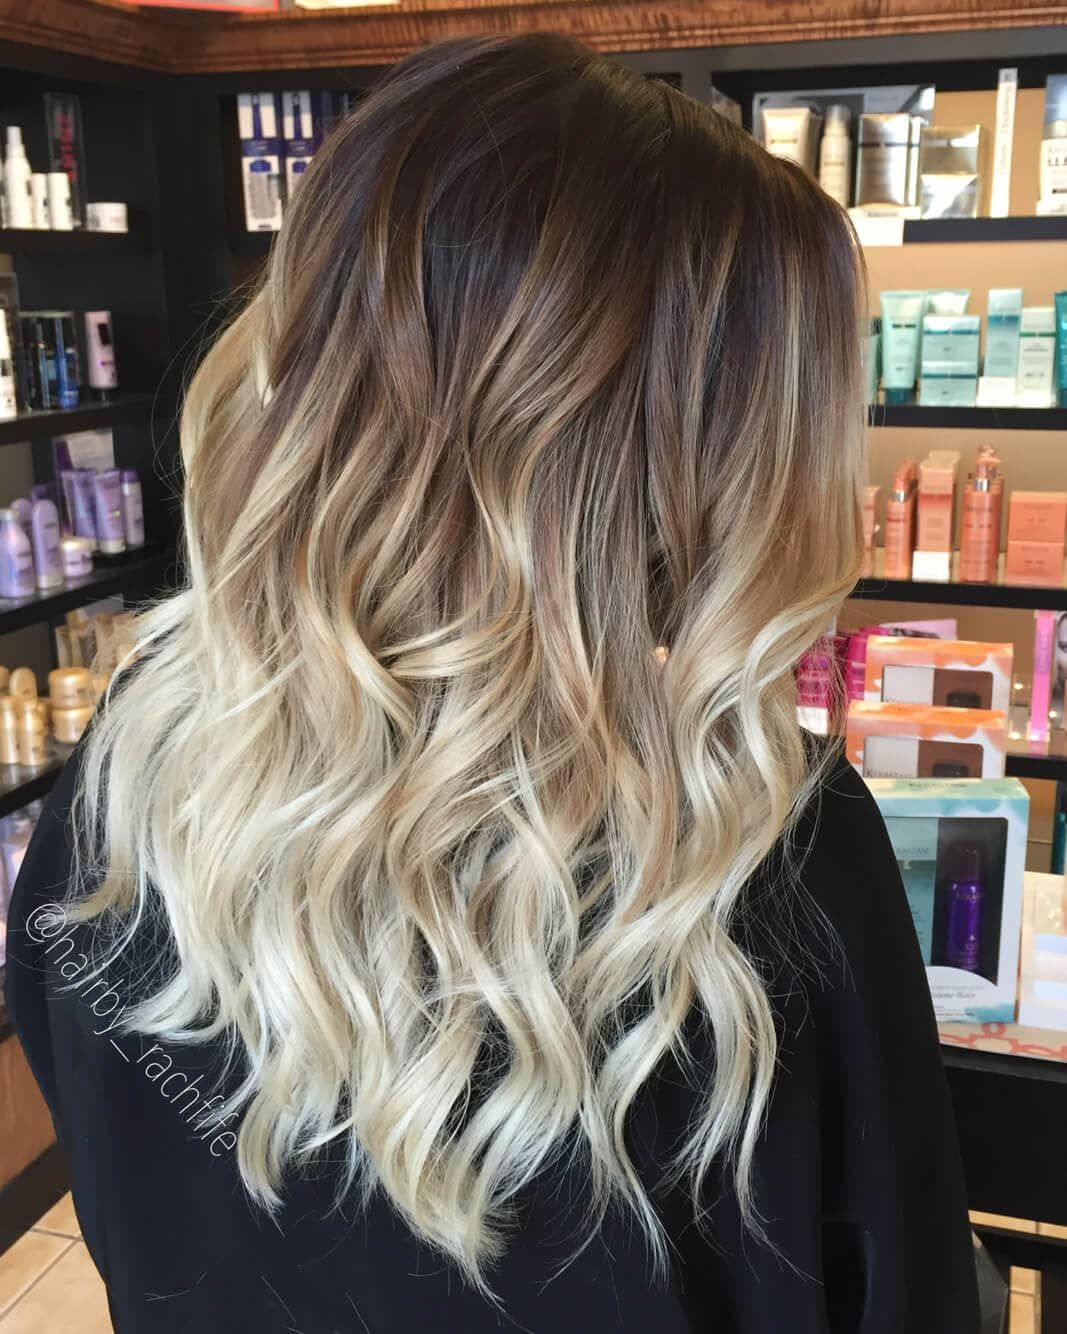 60 Looks With Caramel Highlights On Brown And Dark Brown Hair Blonde Hair With Roots Dark Roots Blonde Hair Dark To Light Hair